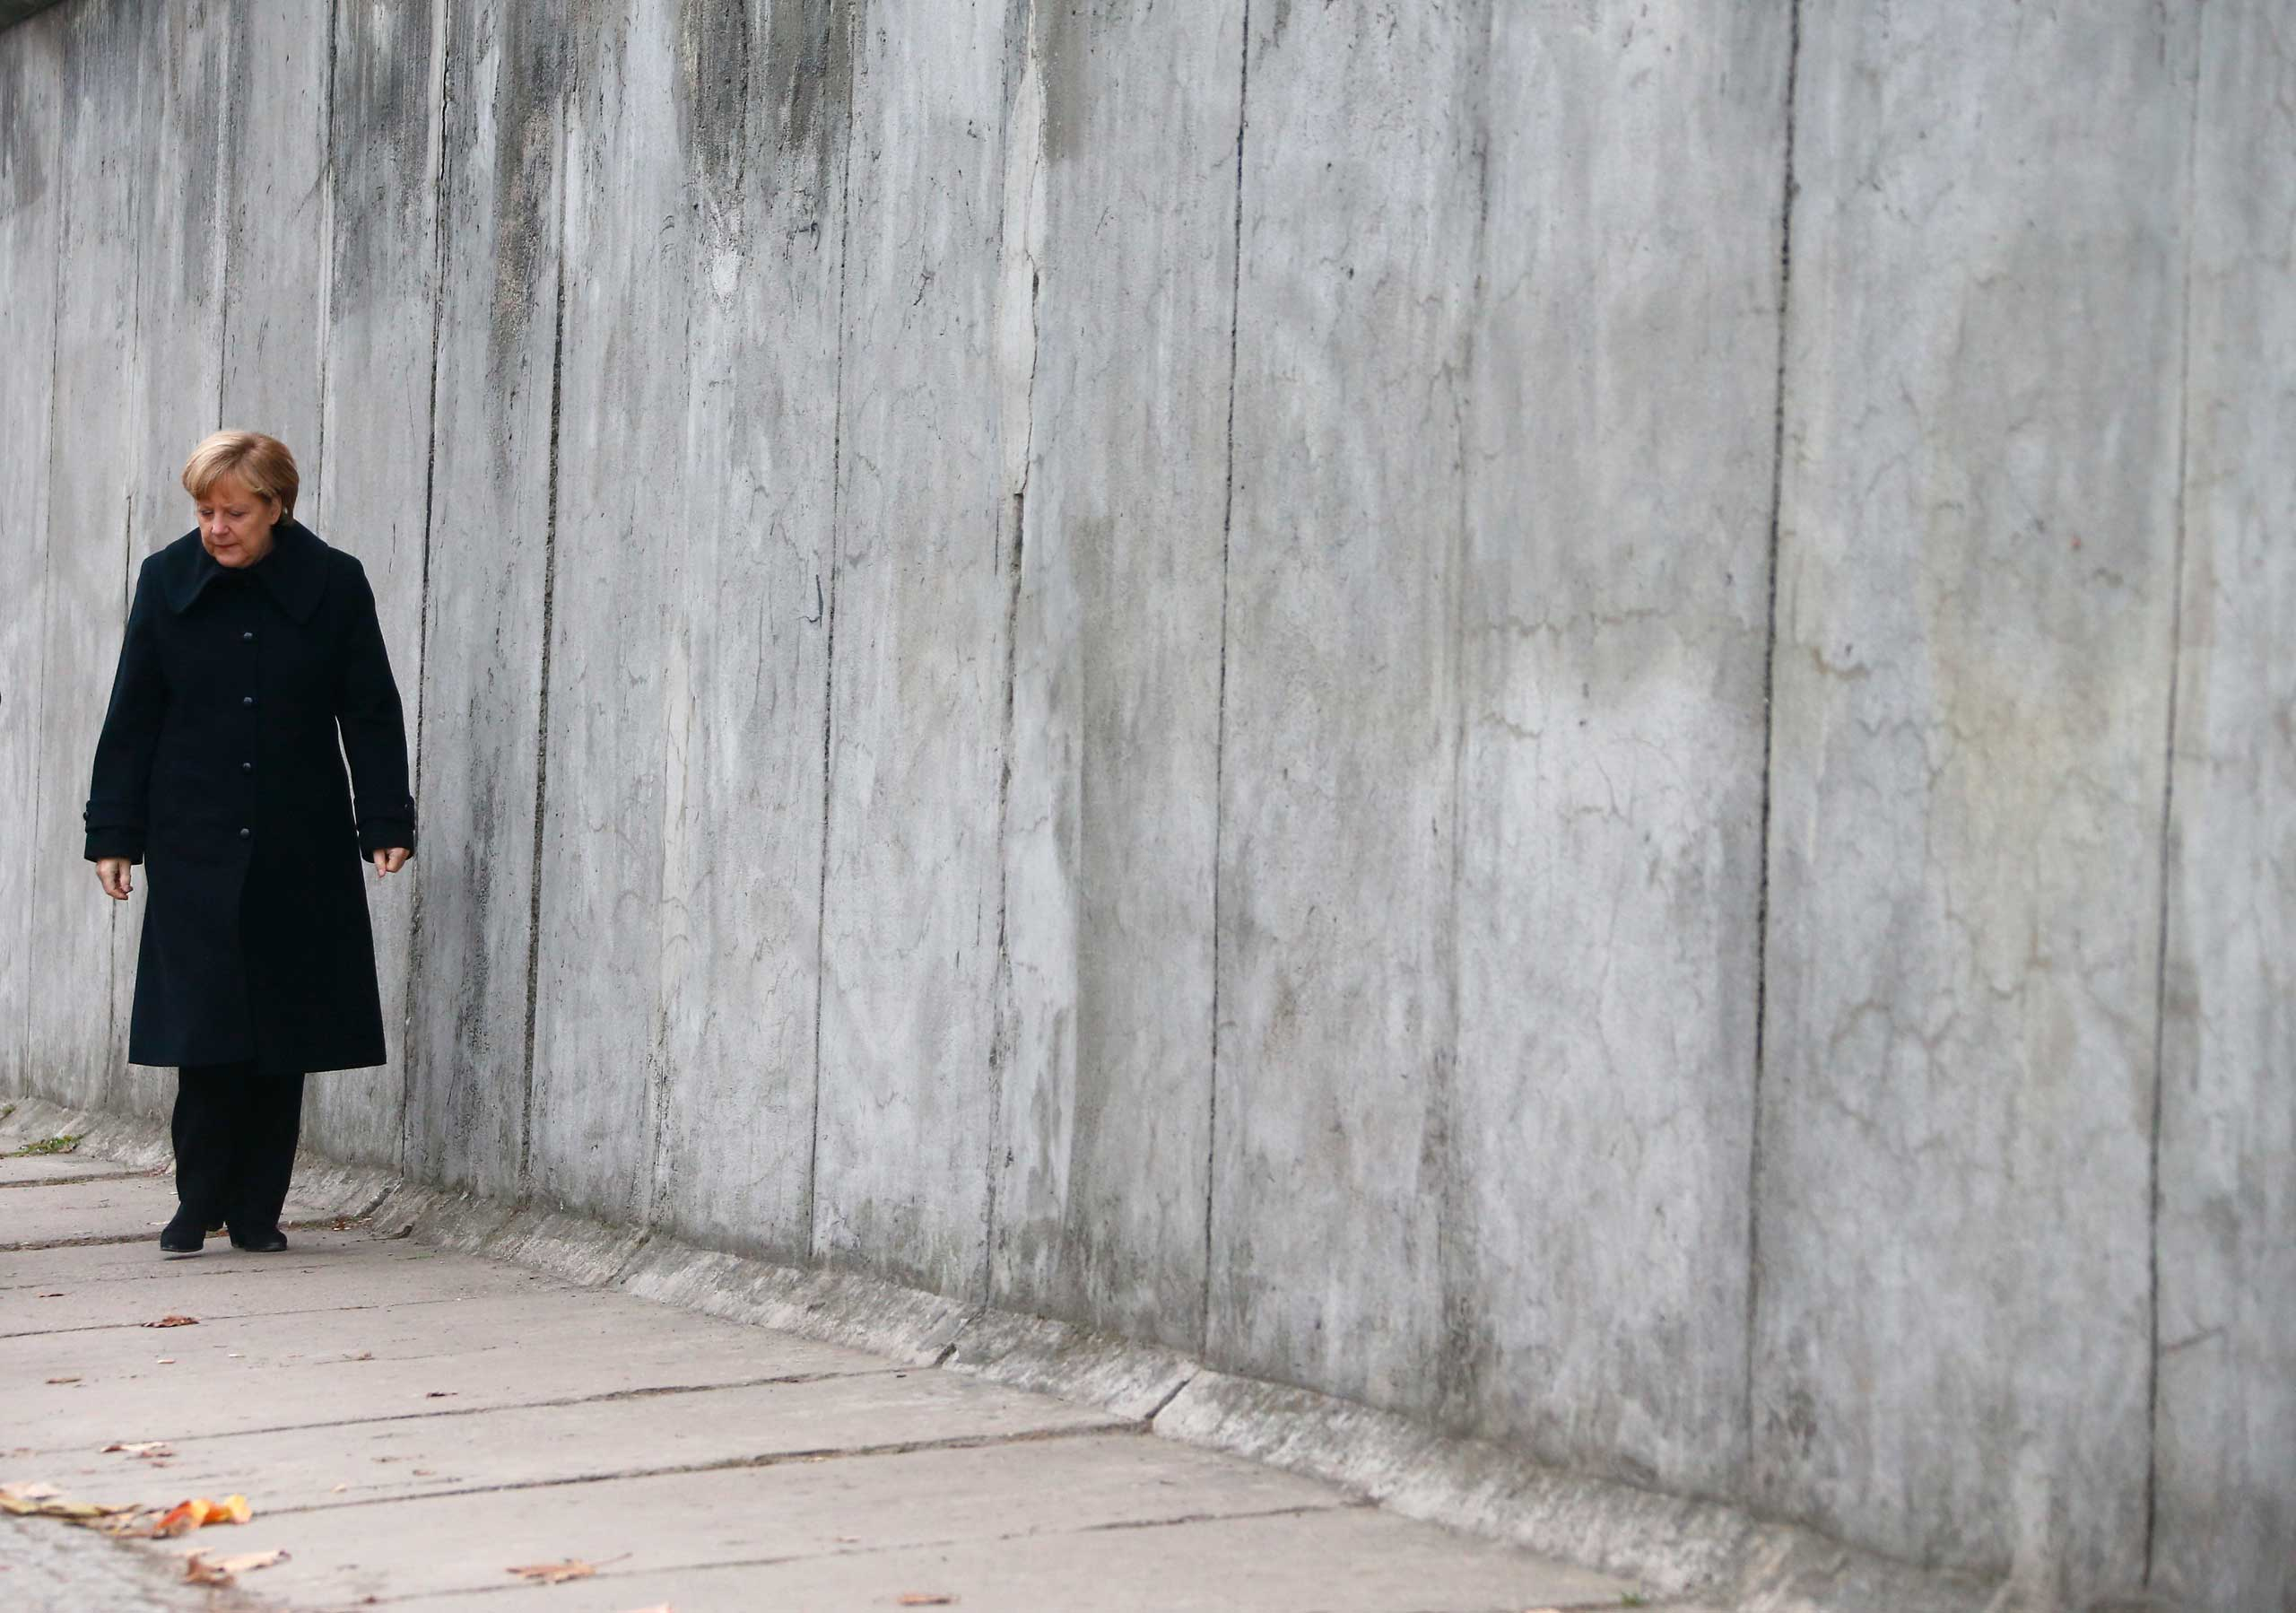 German Chancellor Angela Merkel walks along a section of the former Berlin Wall at the memorial in Bernauer Strasse, during a ceremony marking the 25th anniversary of the fall of the Berlin Wall, in Berlin on November 9, 2014.